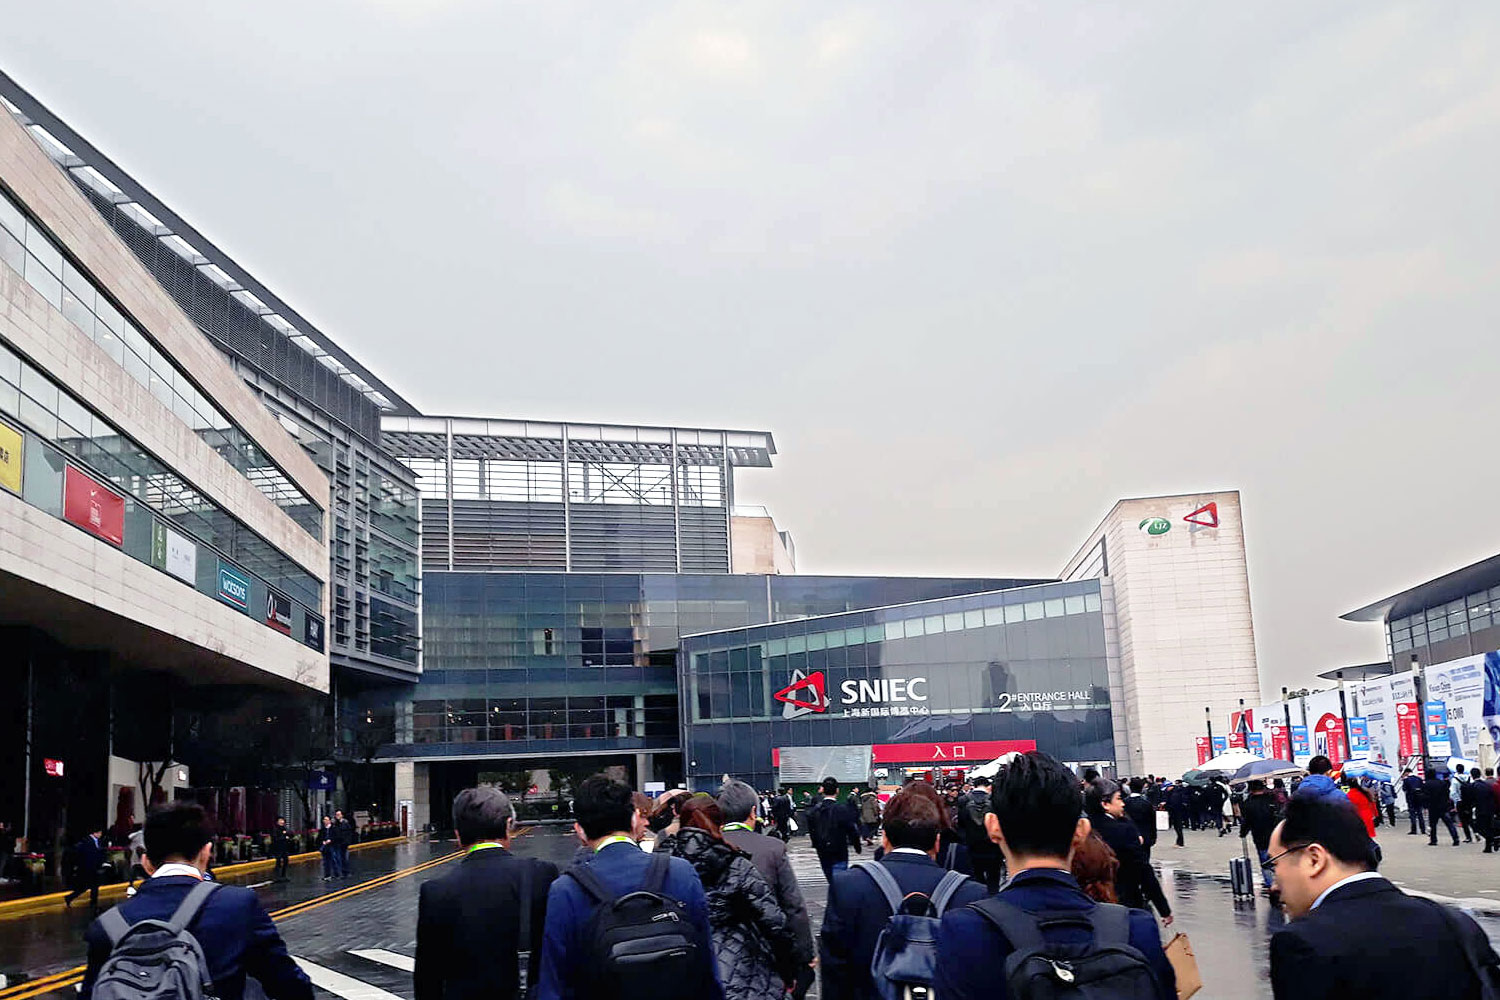 Exterior view of the Shanghai New International Expo Centre (SNIEC) with numerous visitors who flock to the hall entrance. The SNIEC is considered to be one of the most impressive exhibition sites worldwide. Simultaneously with the SEMICON, the electronica, the productronica, as well as the LASER World of PHOTONICS CHINA 2019 took place on this site.